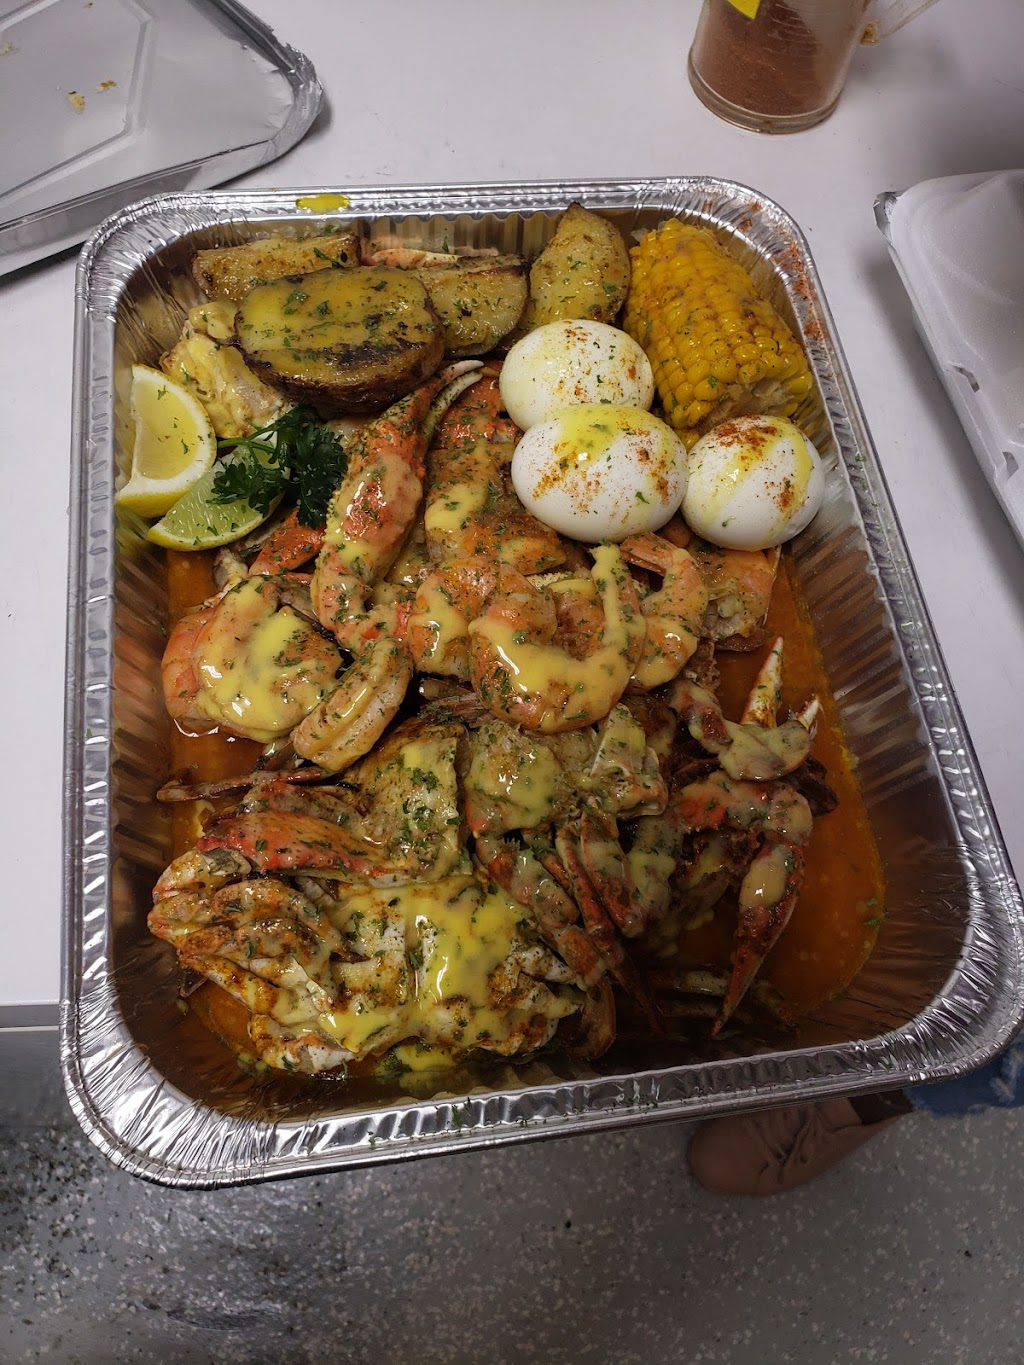 Miami Crab and Seafood | restaurant | 20723 NW 2nd Ave, Miami Gardens, FL 33169, USA | 3056273759 OR +1 305-627-3759